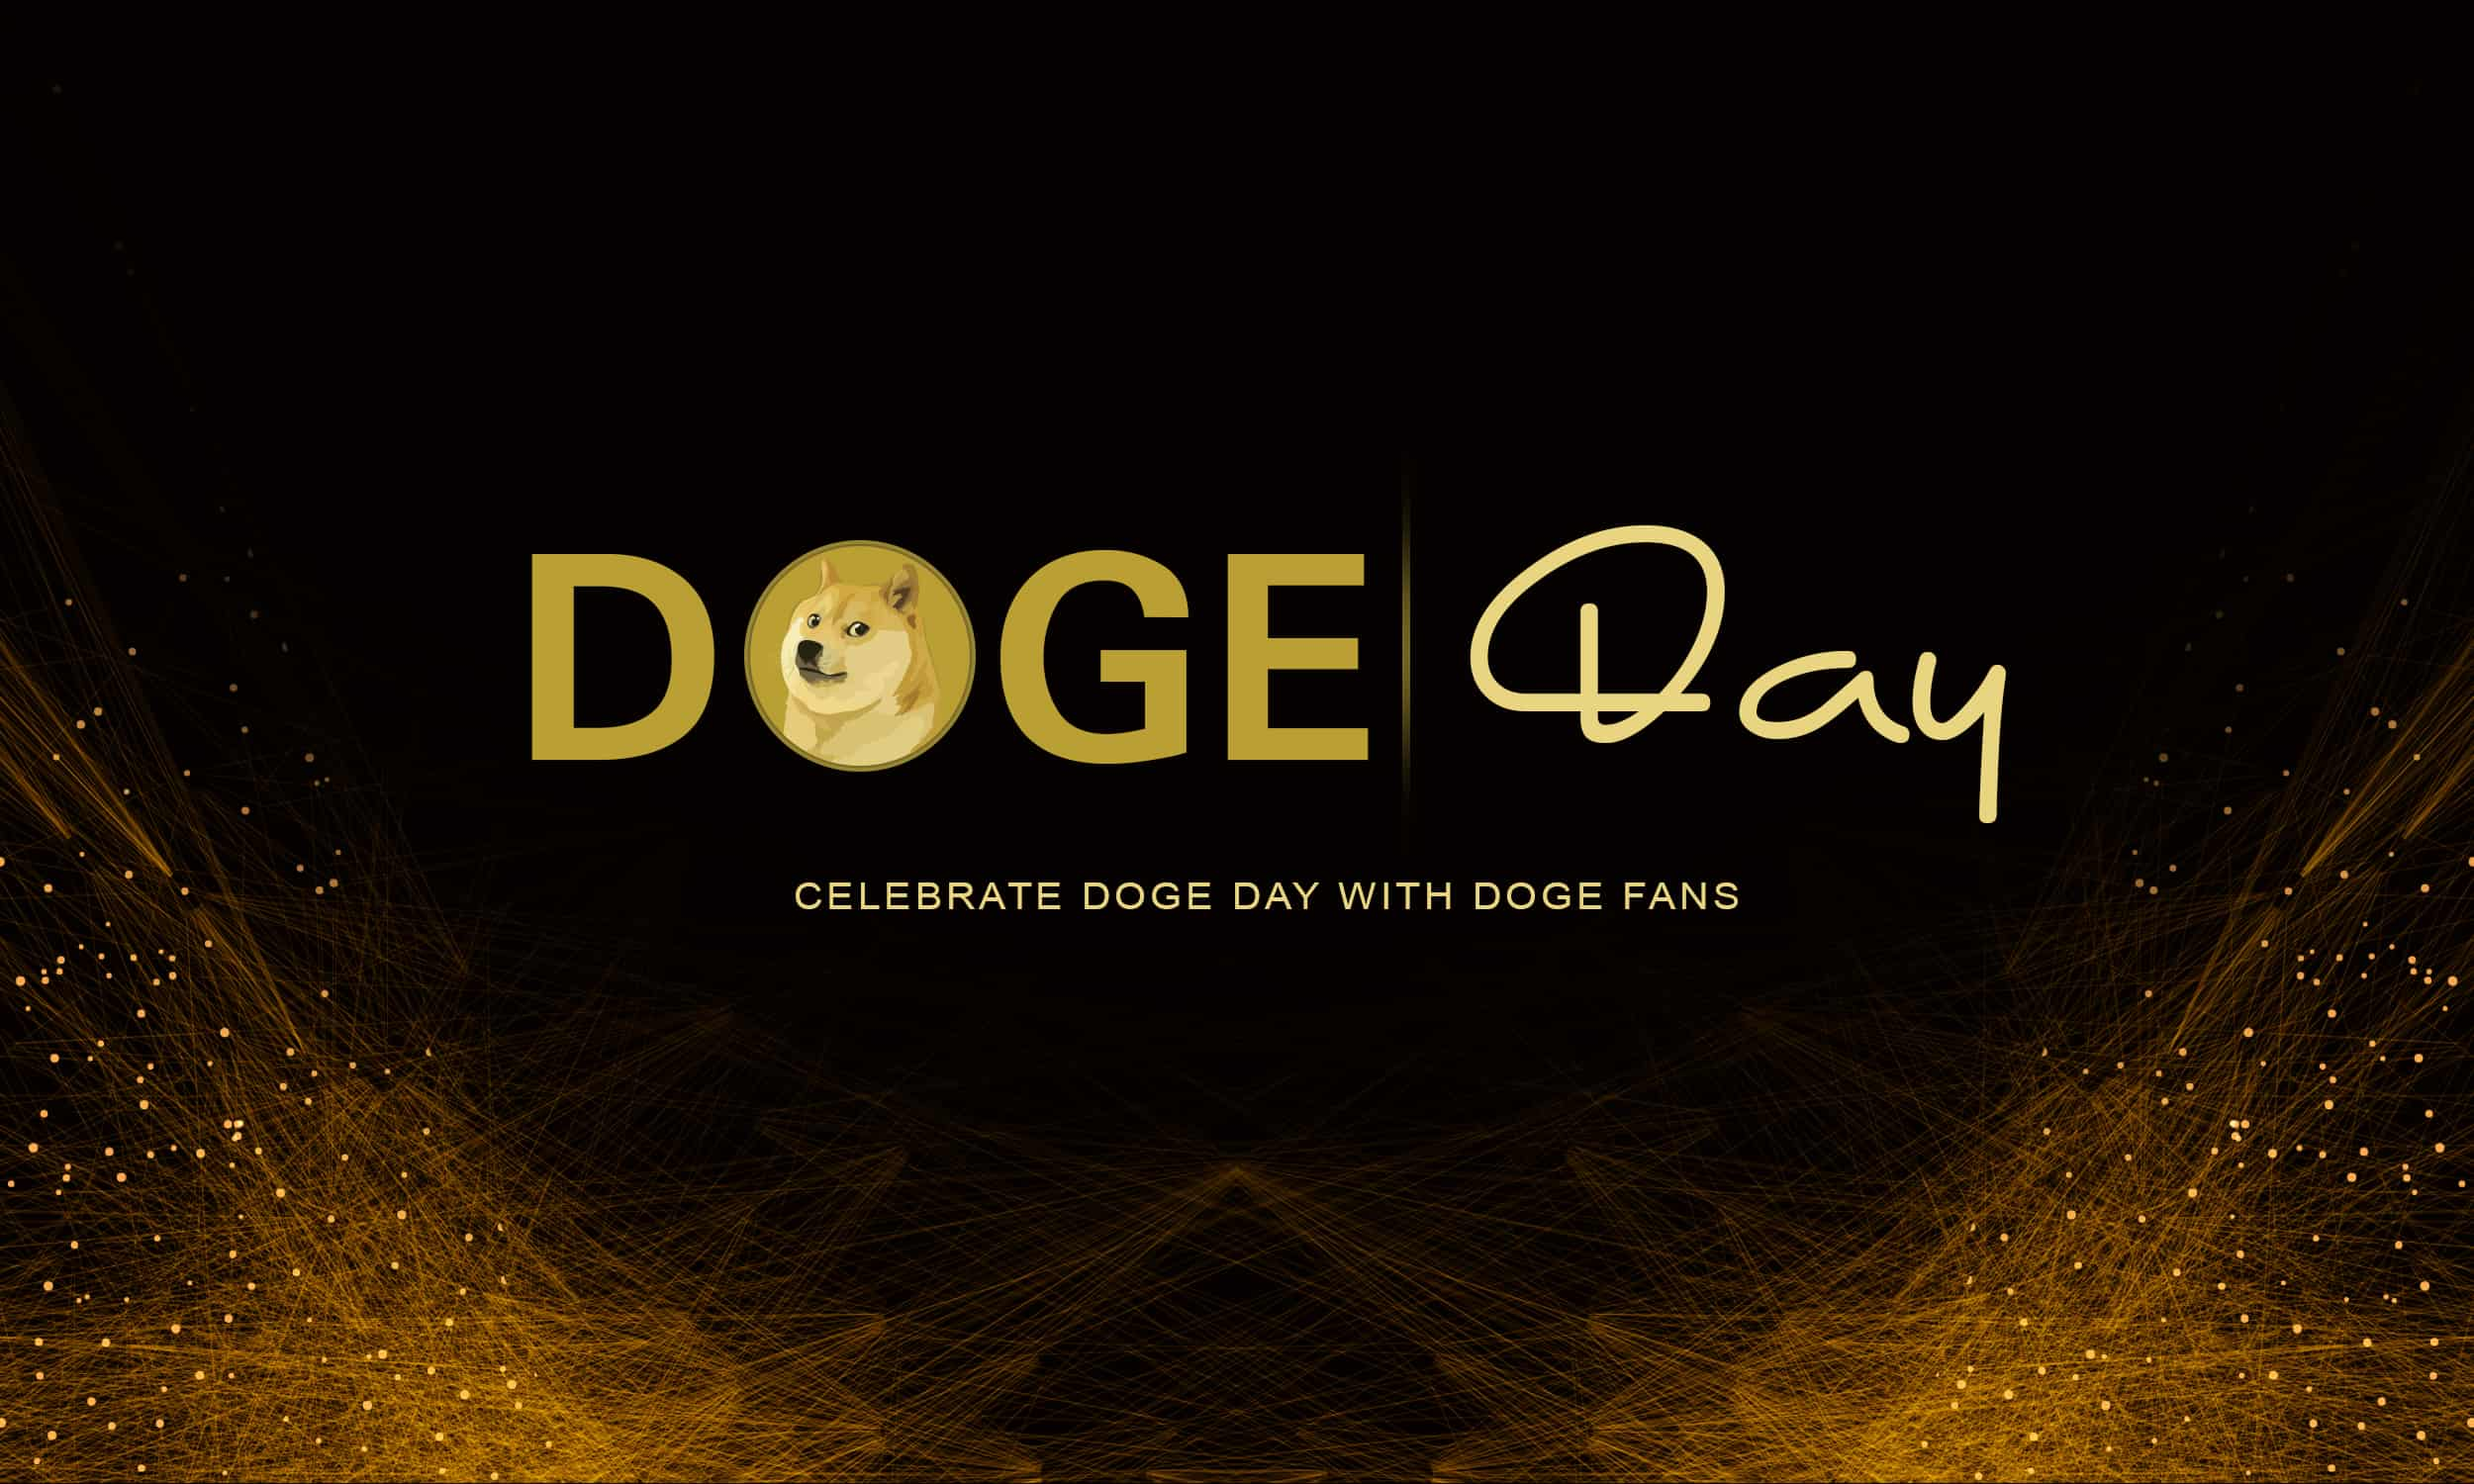 Doge Day